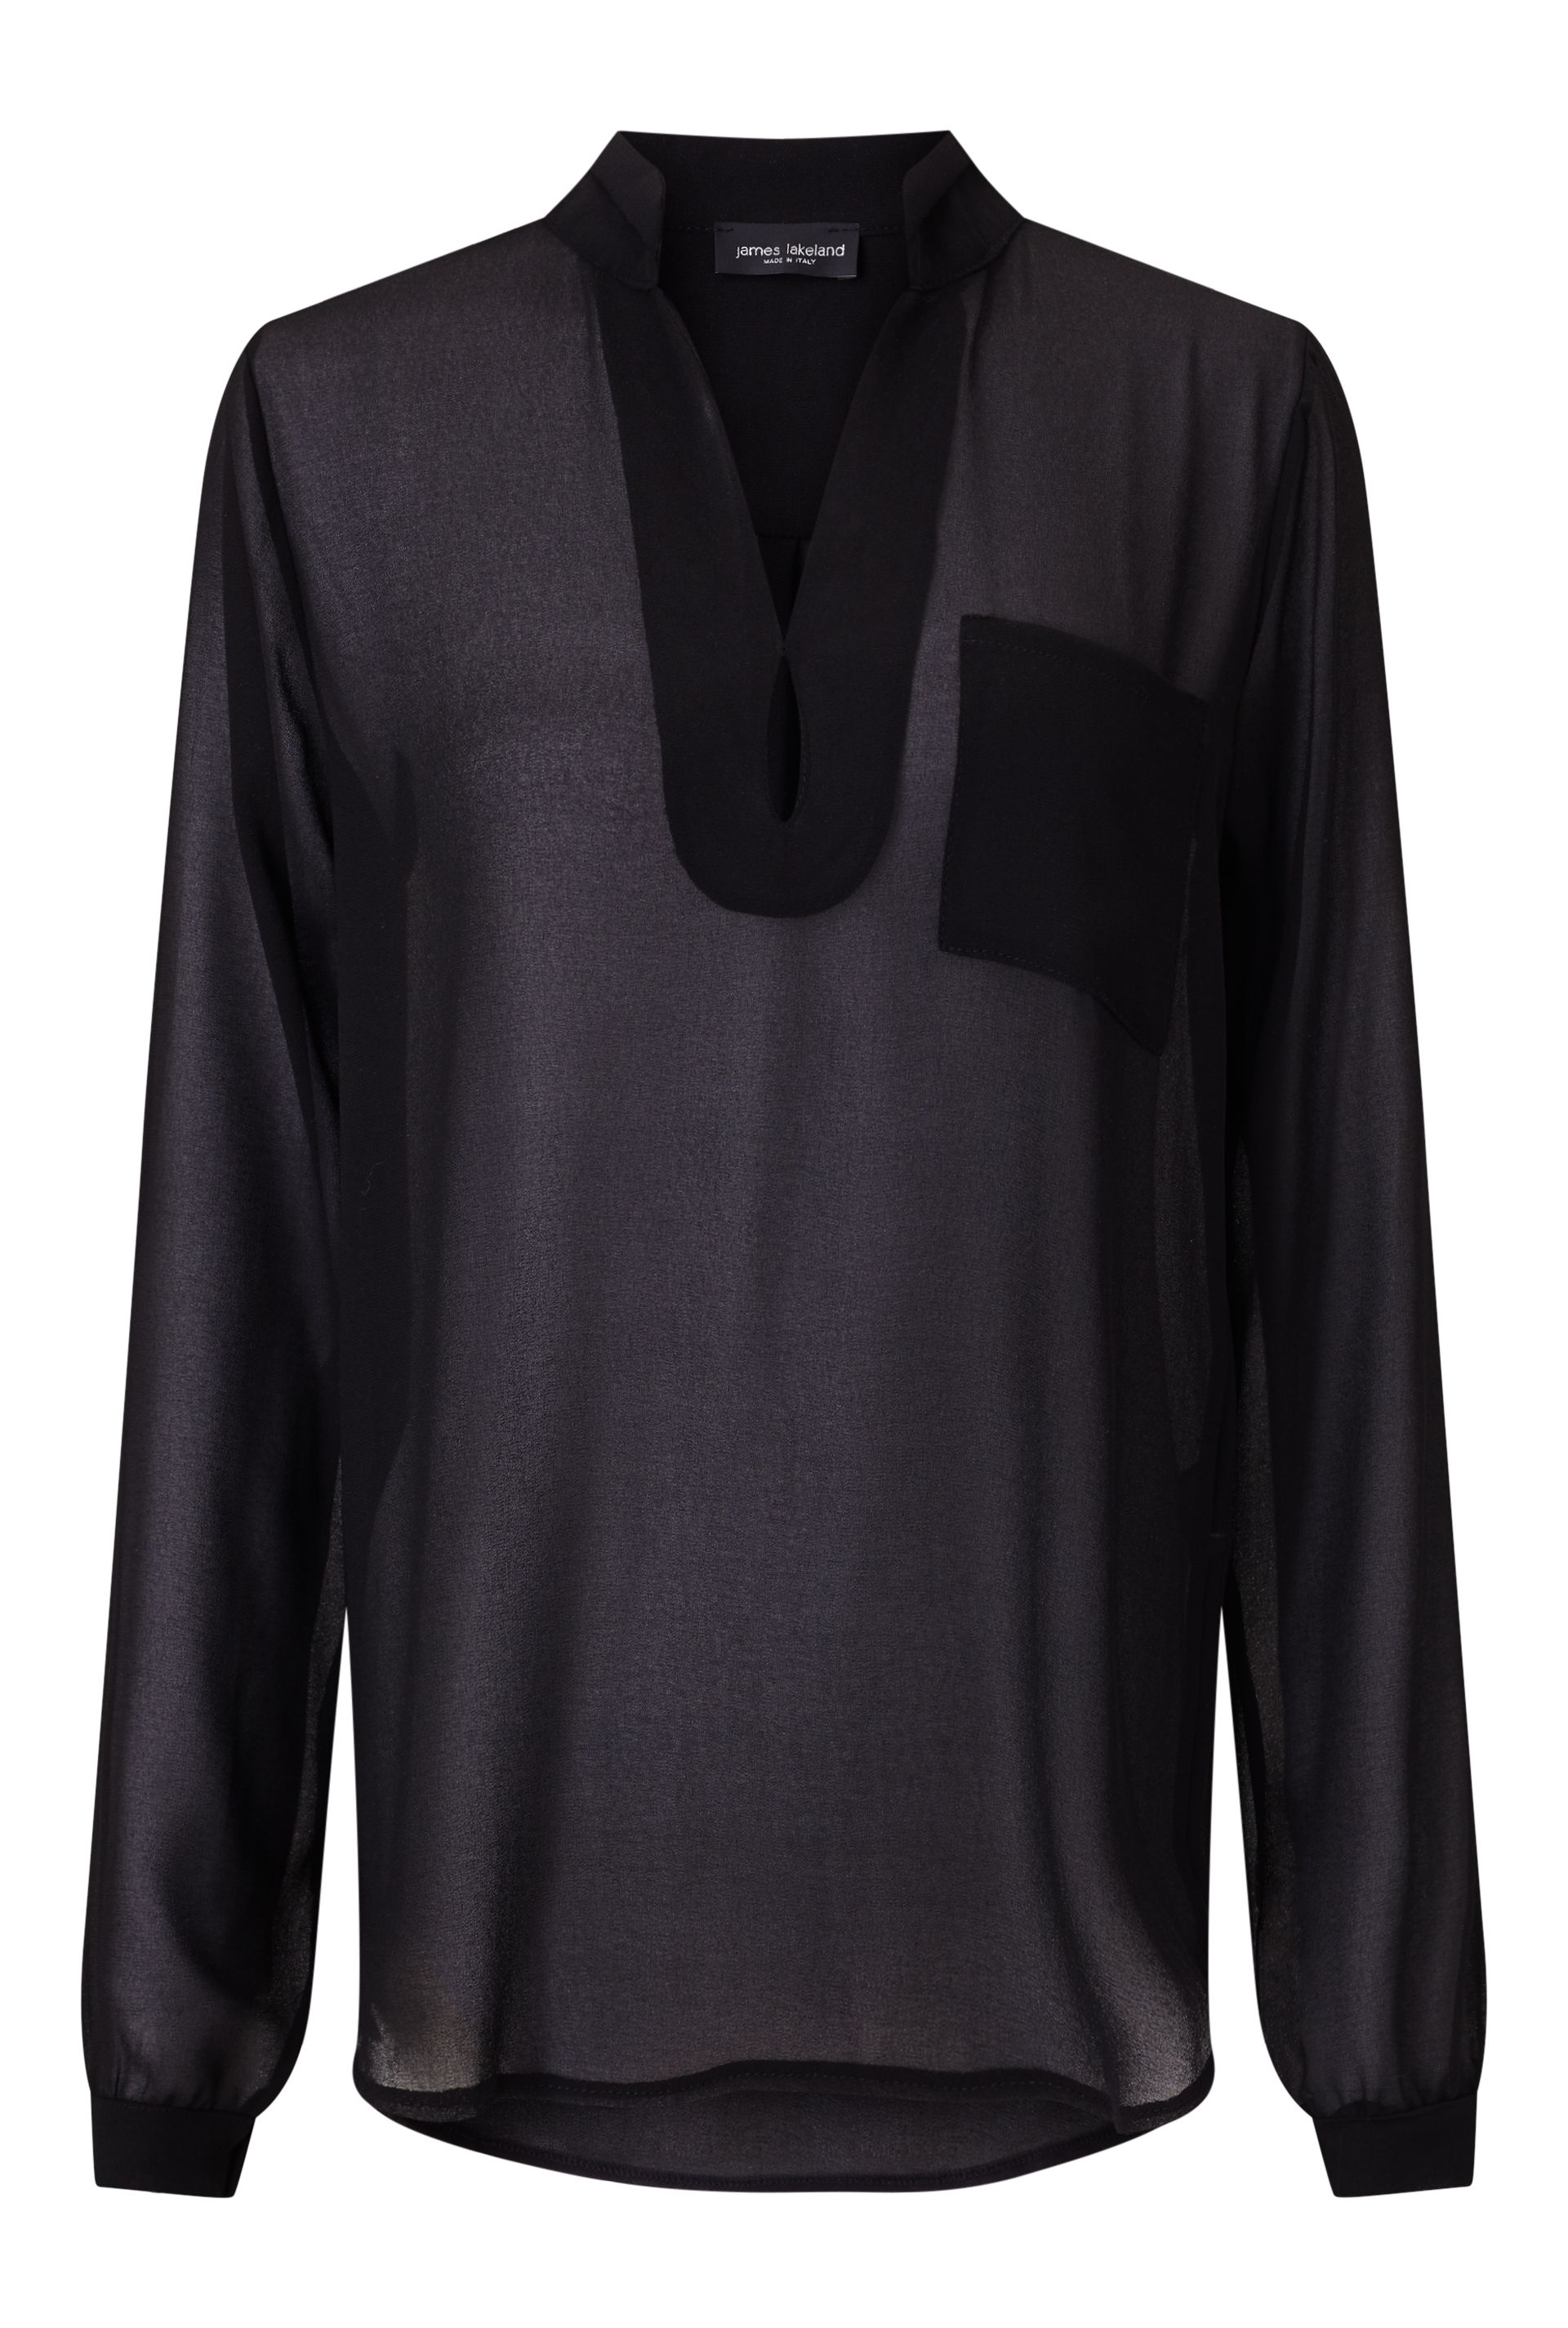 James Lakeland Long Sleeve Pockets Blouse, Black